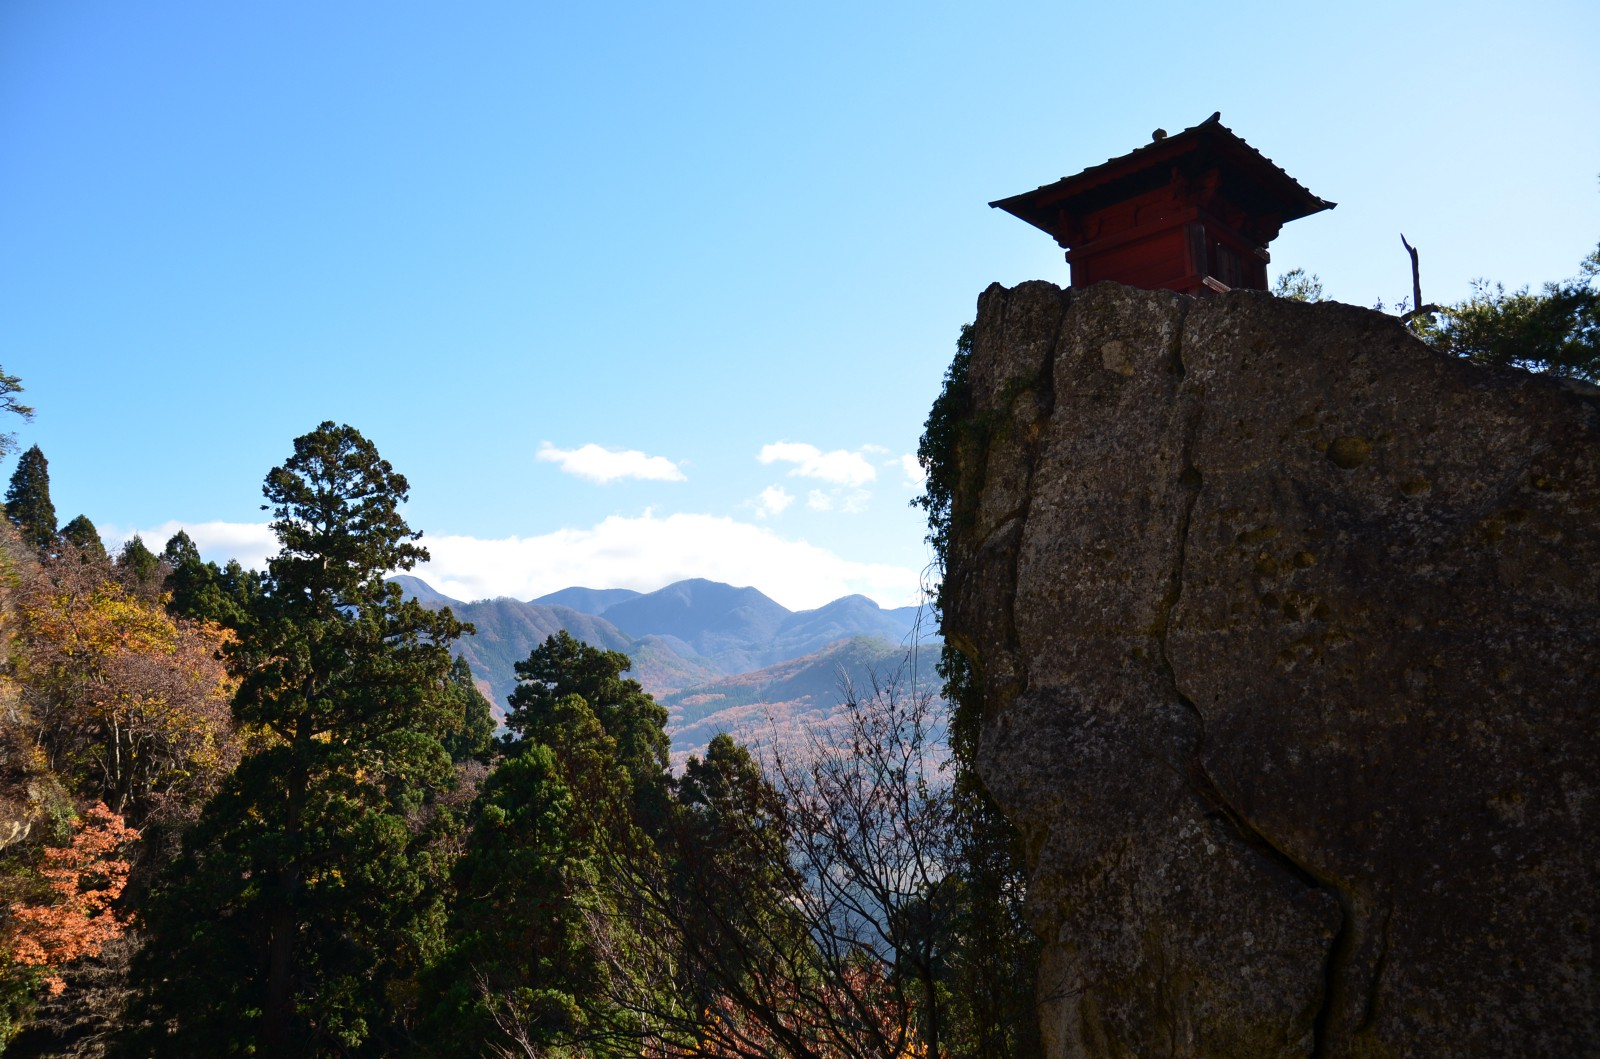 The scenic temple on the cliff: Yamadera in Yamagata